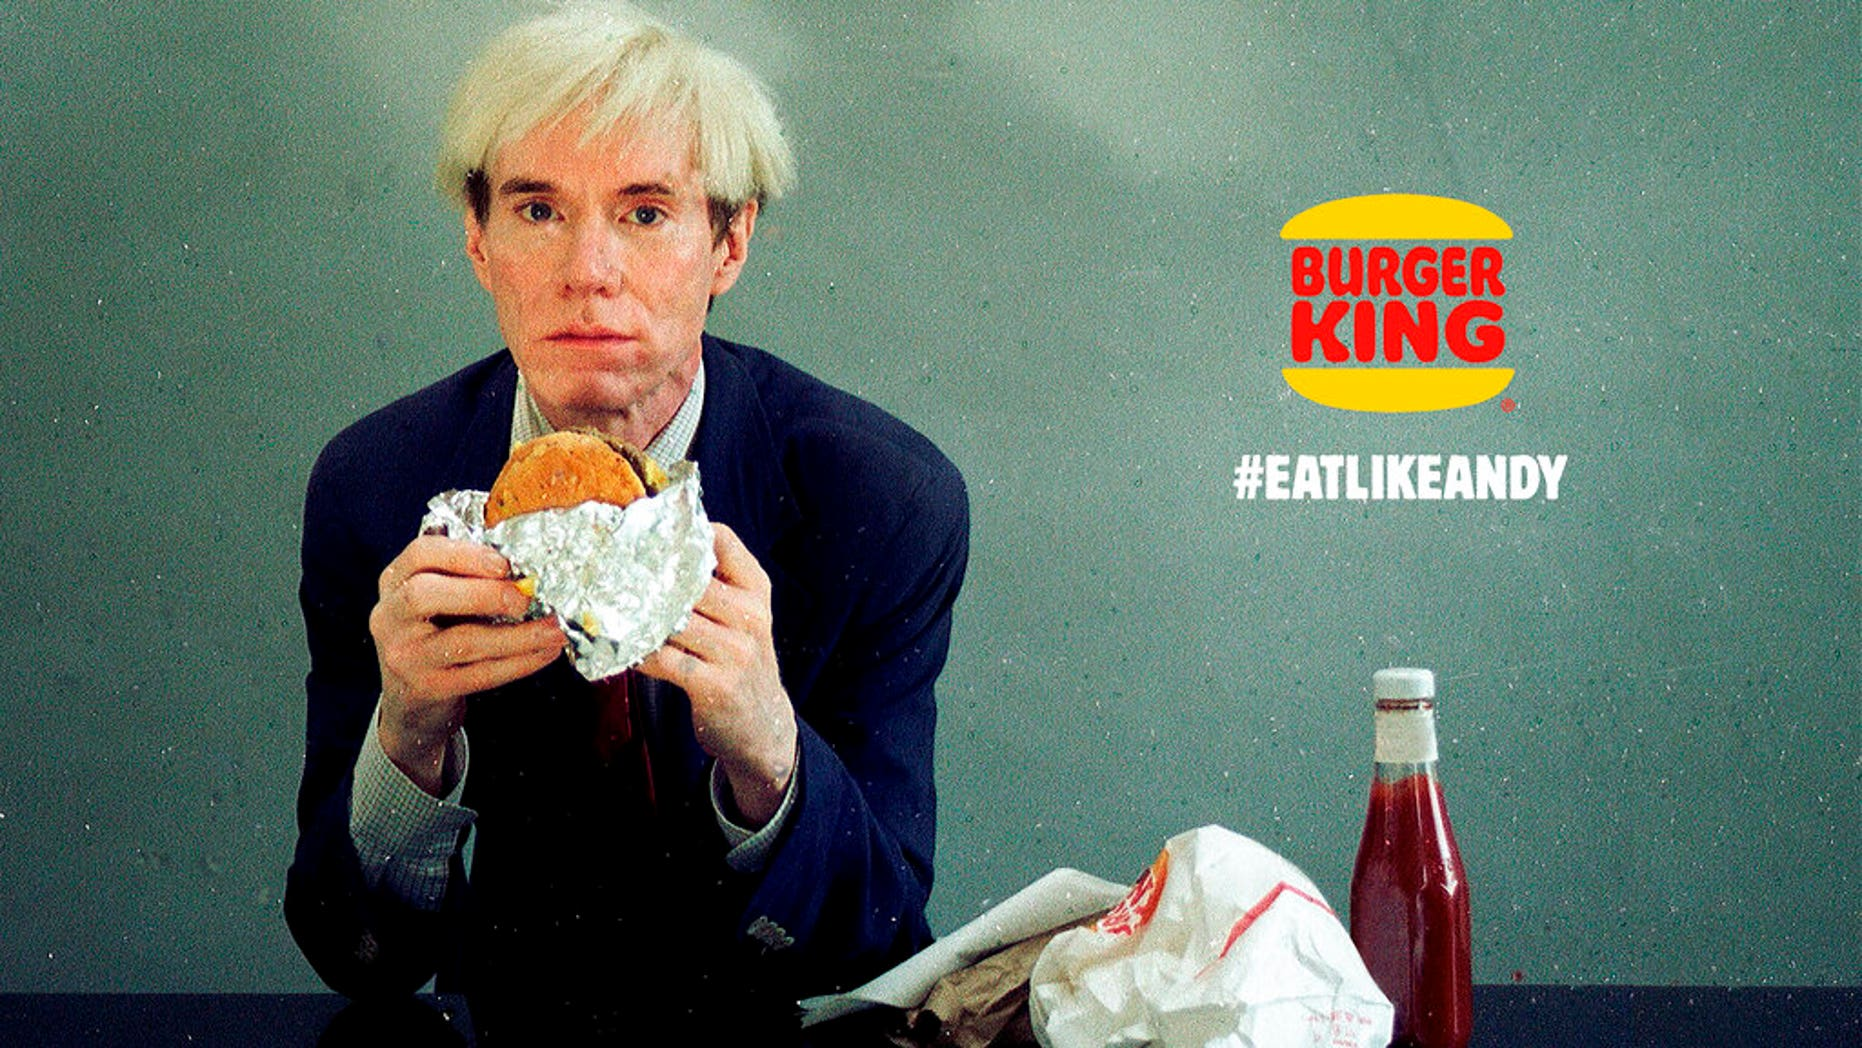 Burger King used clip of pop artist Andy Warhol eating a Whopper for its Super Bowl LIII ad.